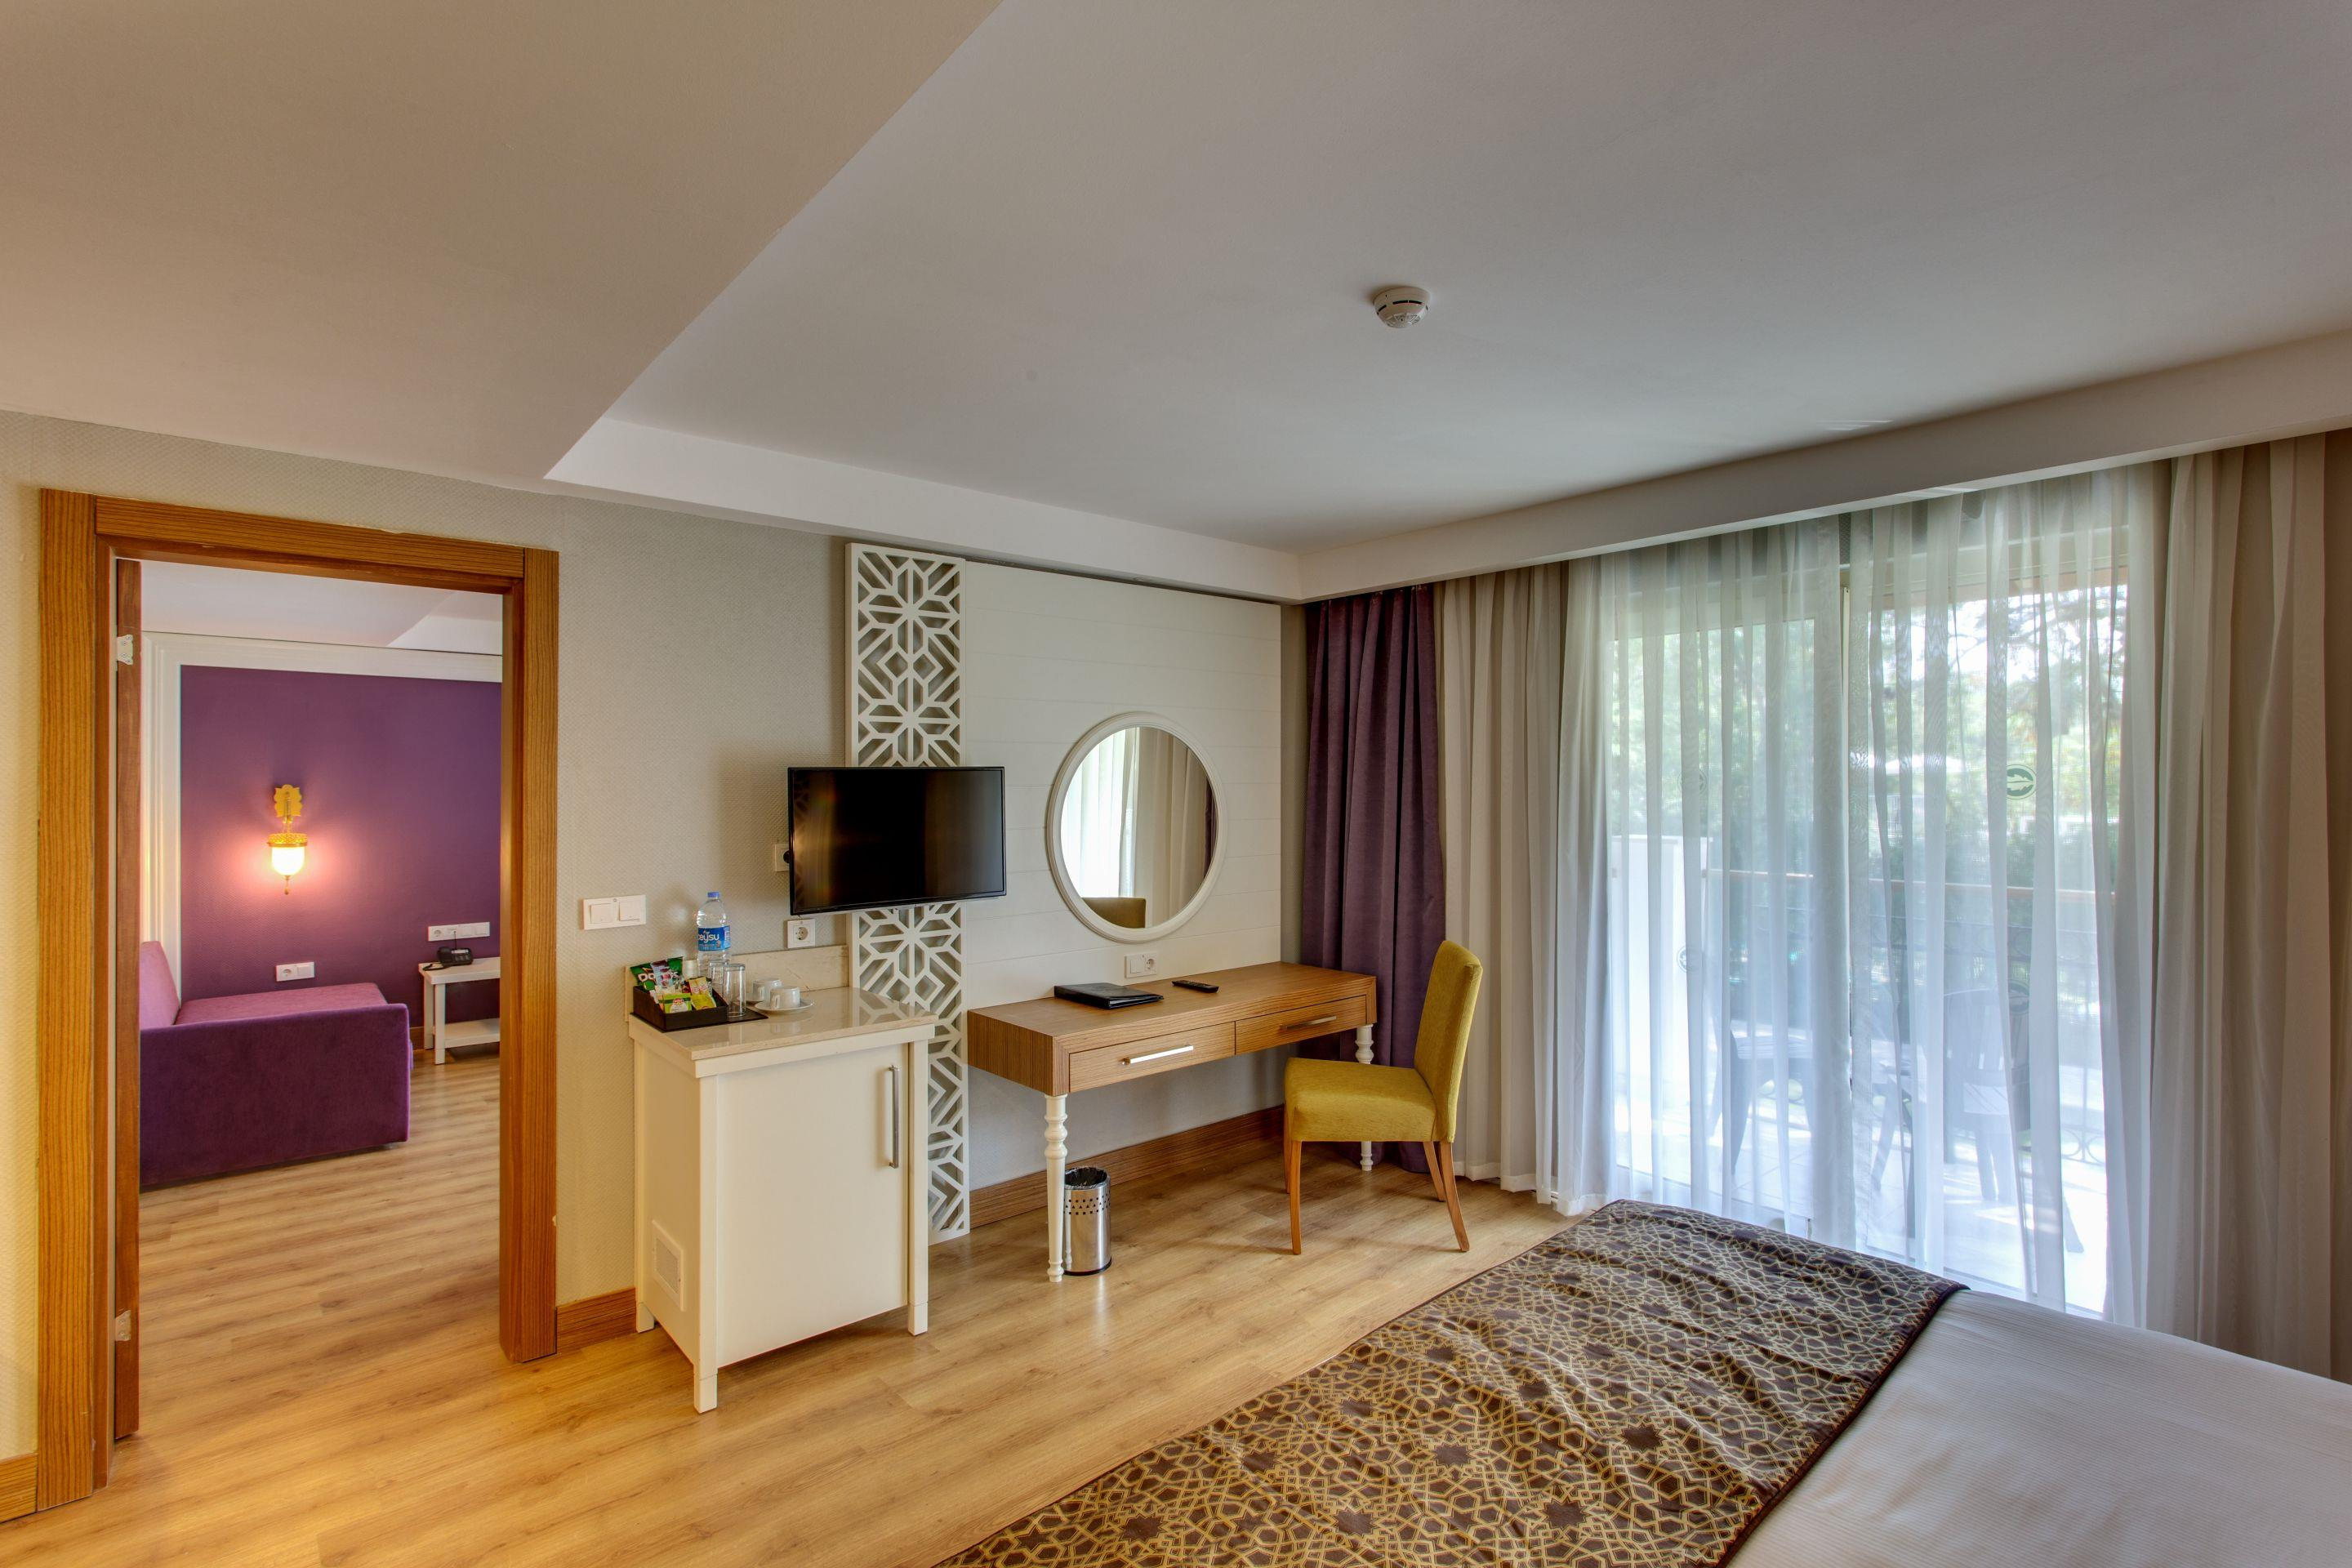 http://www.orextravel.sk/OREX/hotelphotos/sherwood-exclusive-kemer-general-0043.jpg